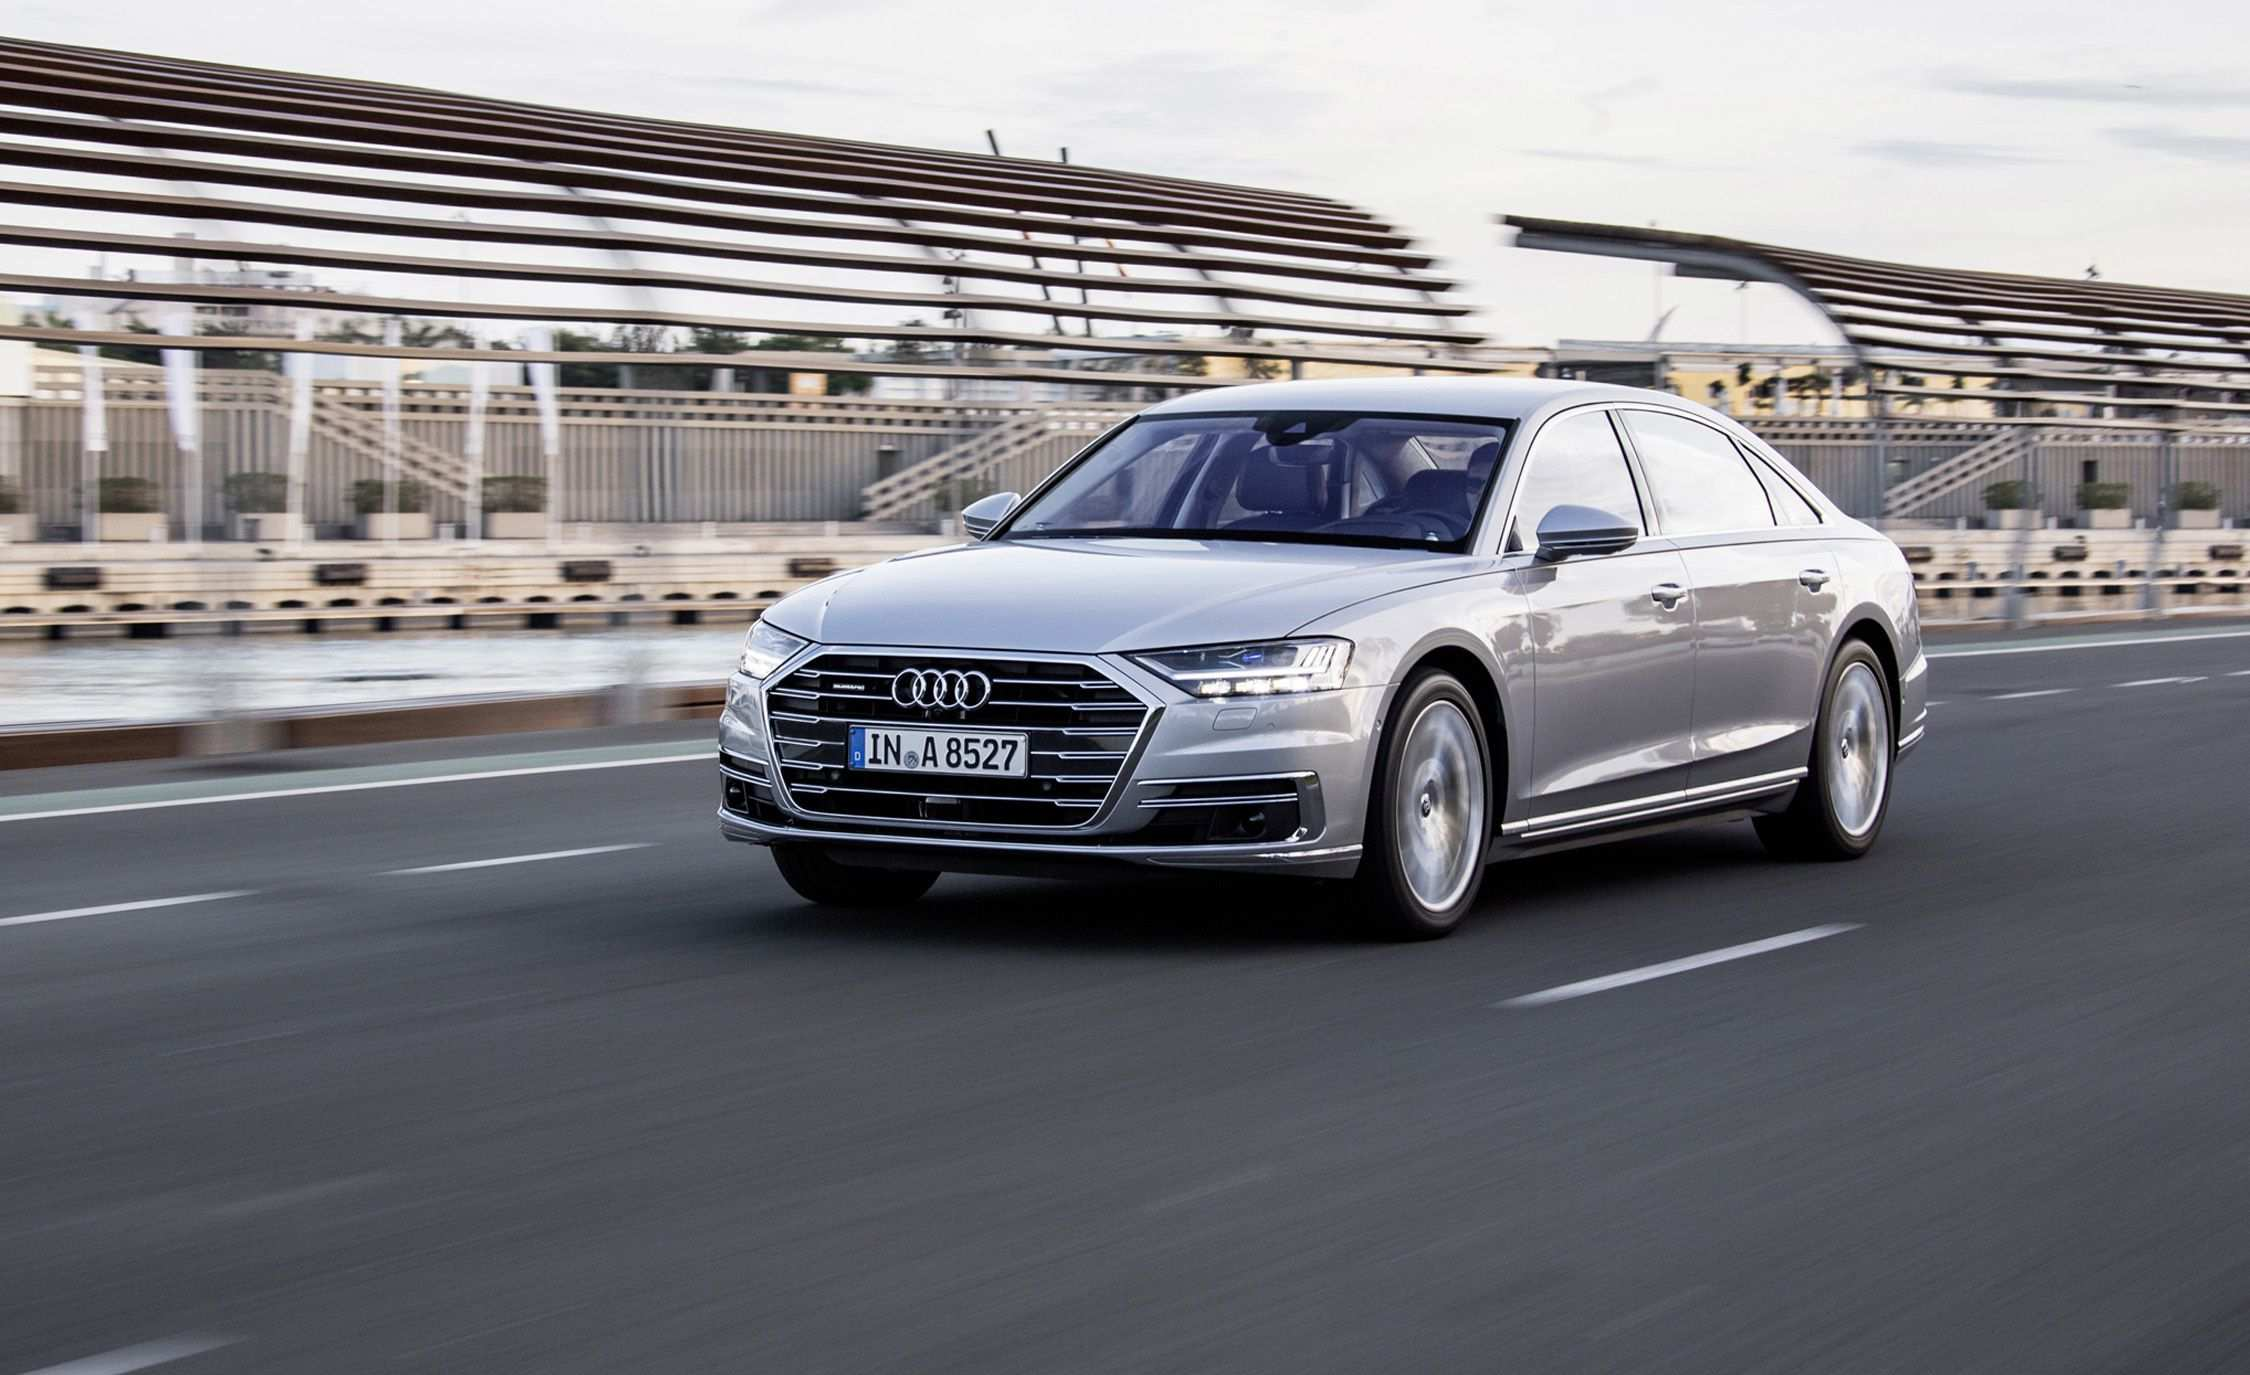 98 The 2019 Audi A8 Photos Speed Test for 2019 Audi A8 Photos